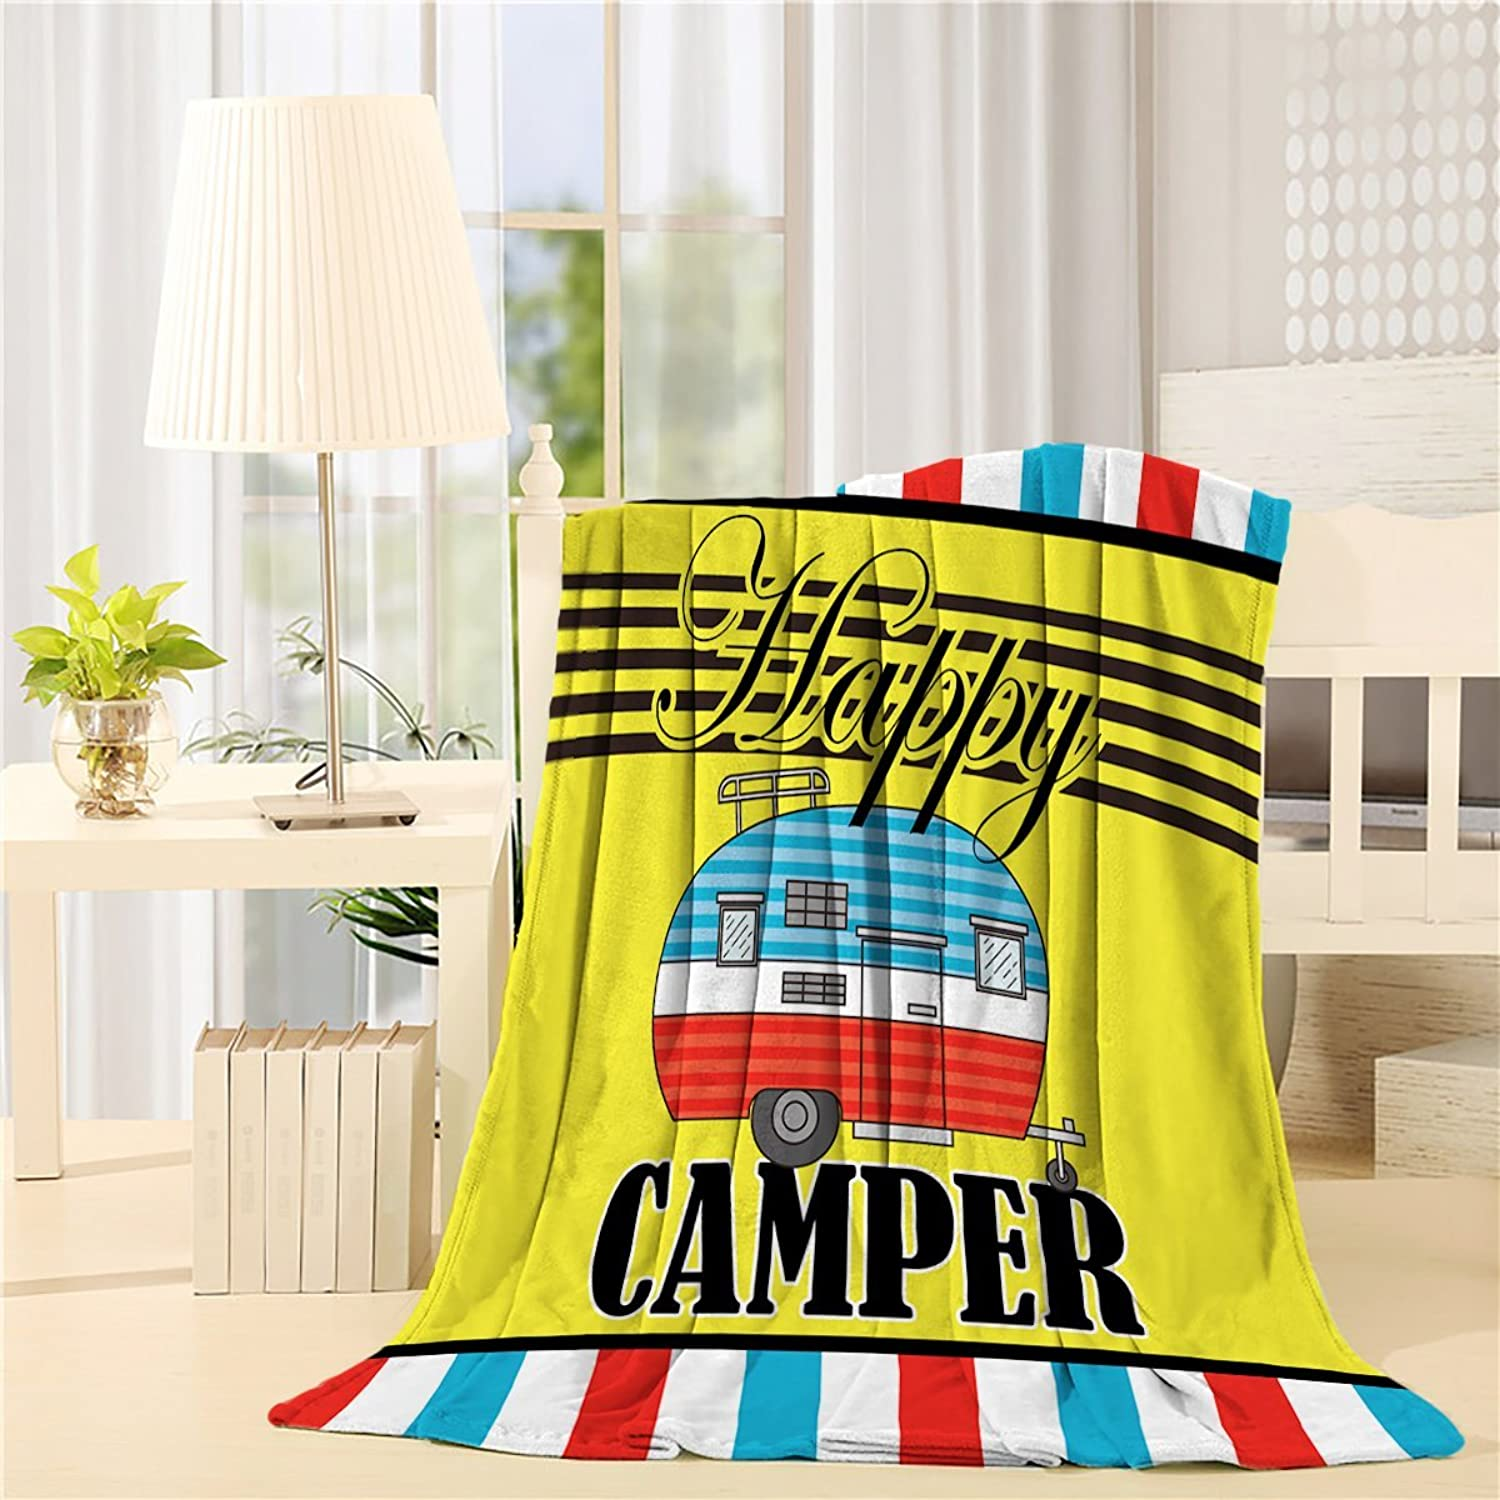 Flannel Fleece Bed Blanket 40 x 50 inchCamper Throw Blanket Lightweight Cozy Plush Blanket for Bedroom Living Rooms Sofa Couch - colorful Bus Travel Graphic with Stripes